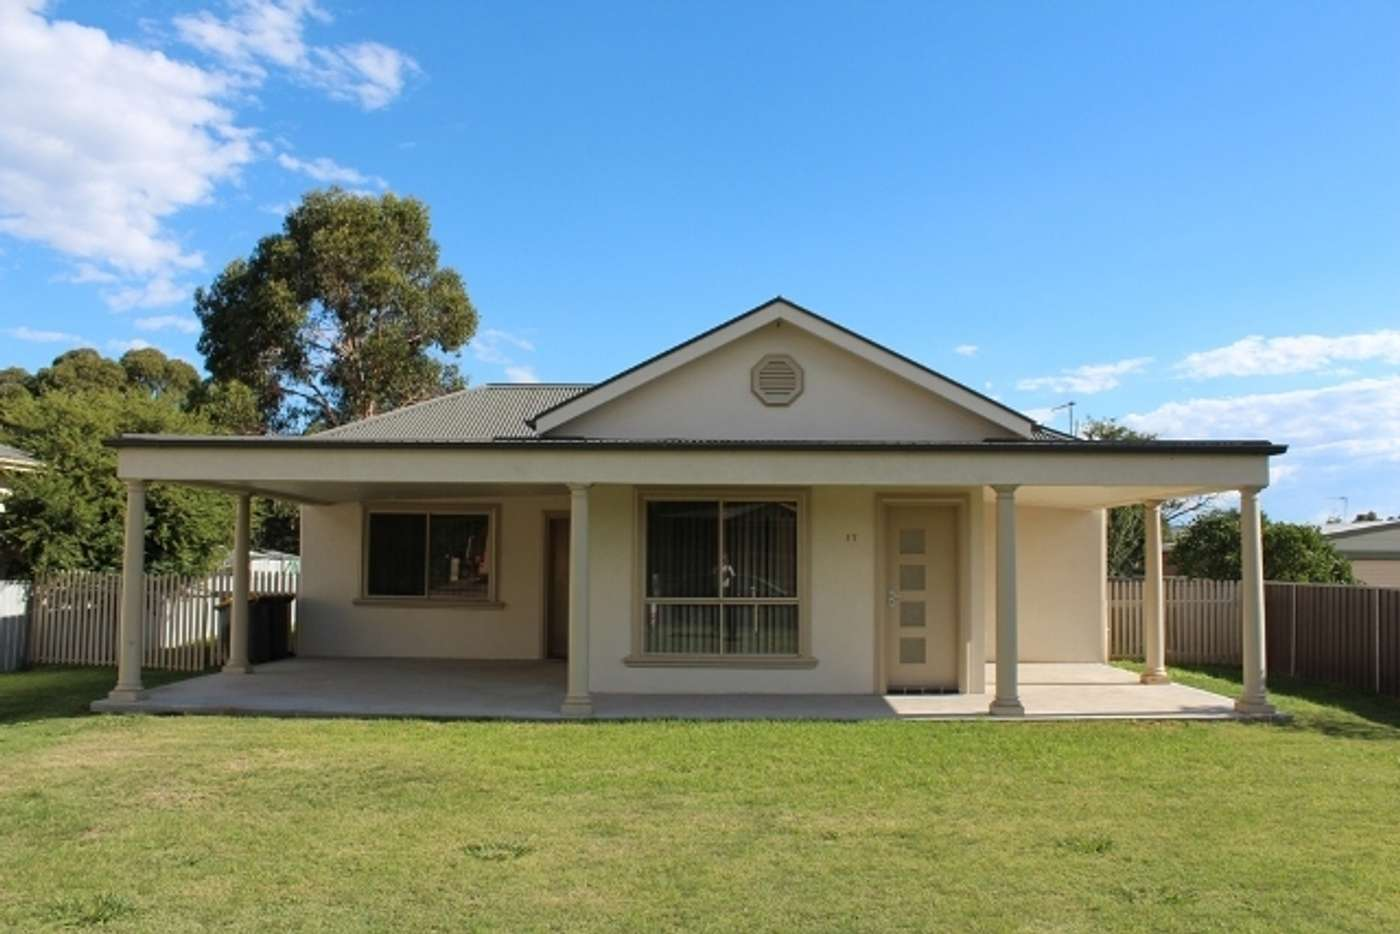 Main view of Homely house listing, 17 Park Street, Eglinton NSW 2795